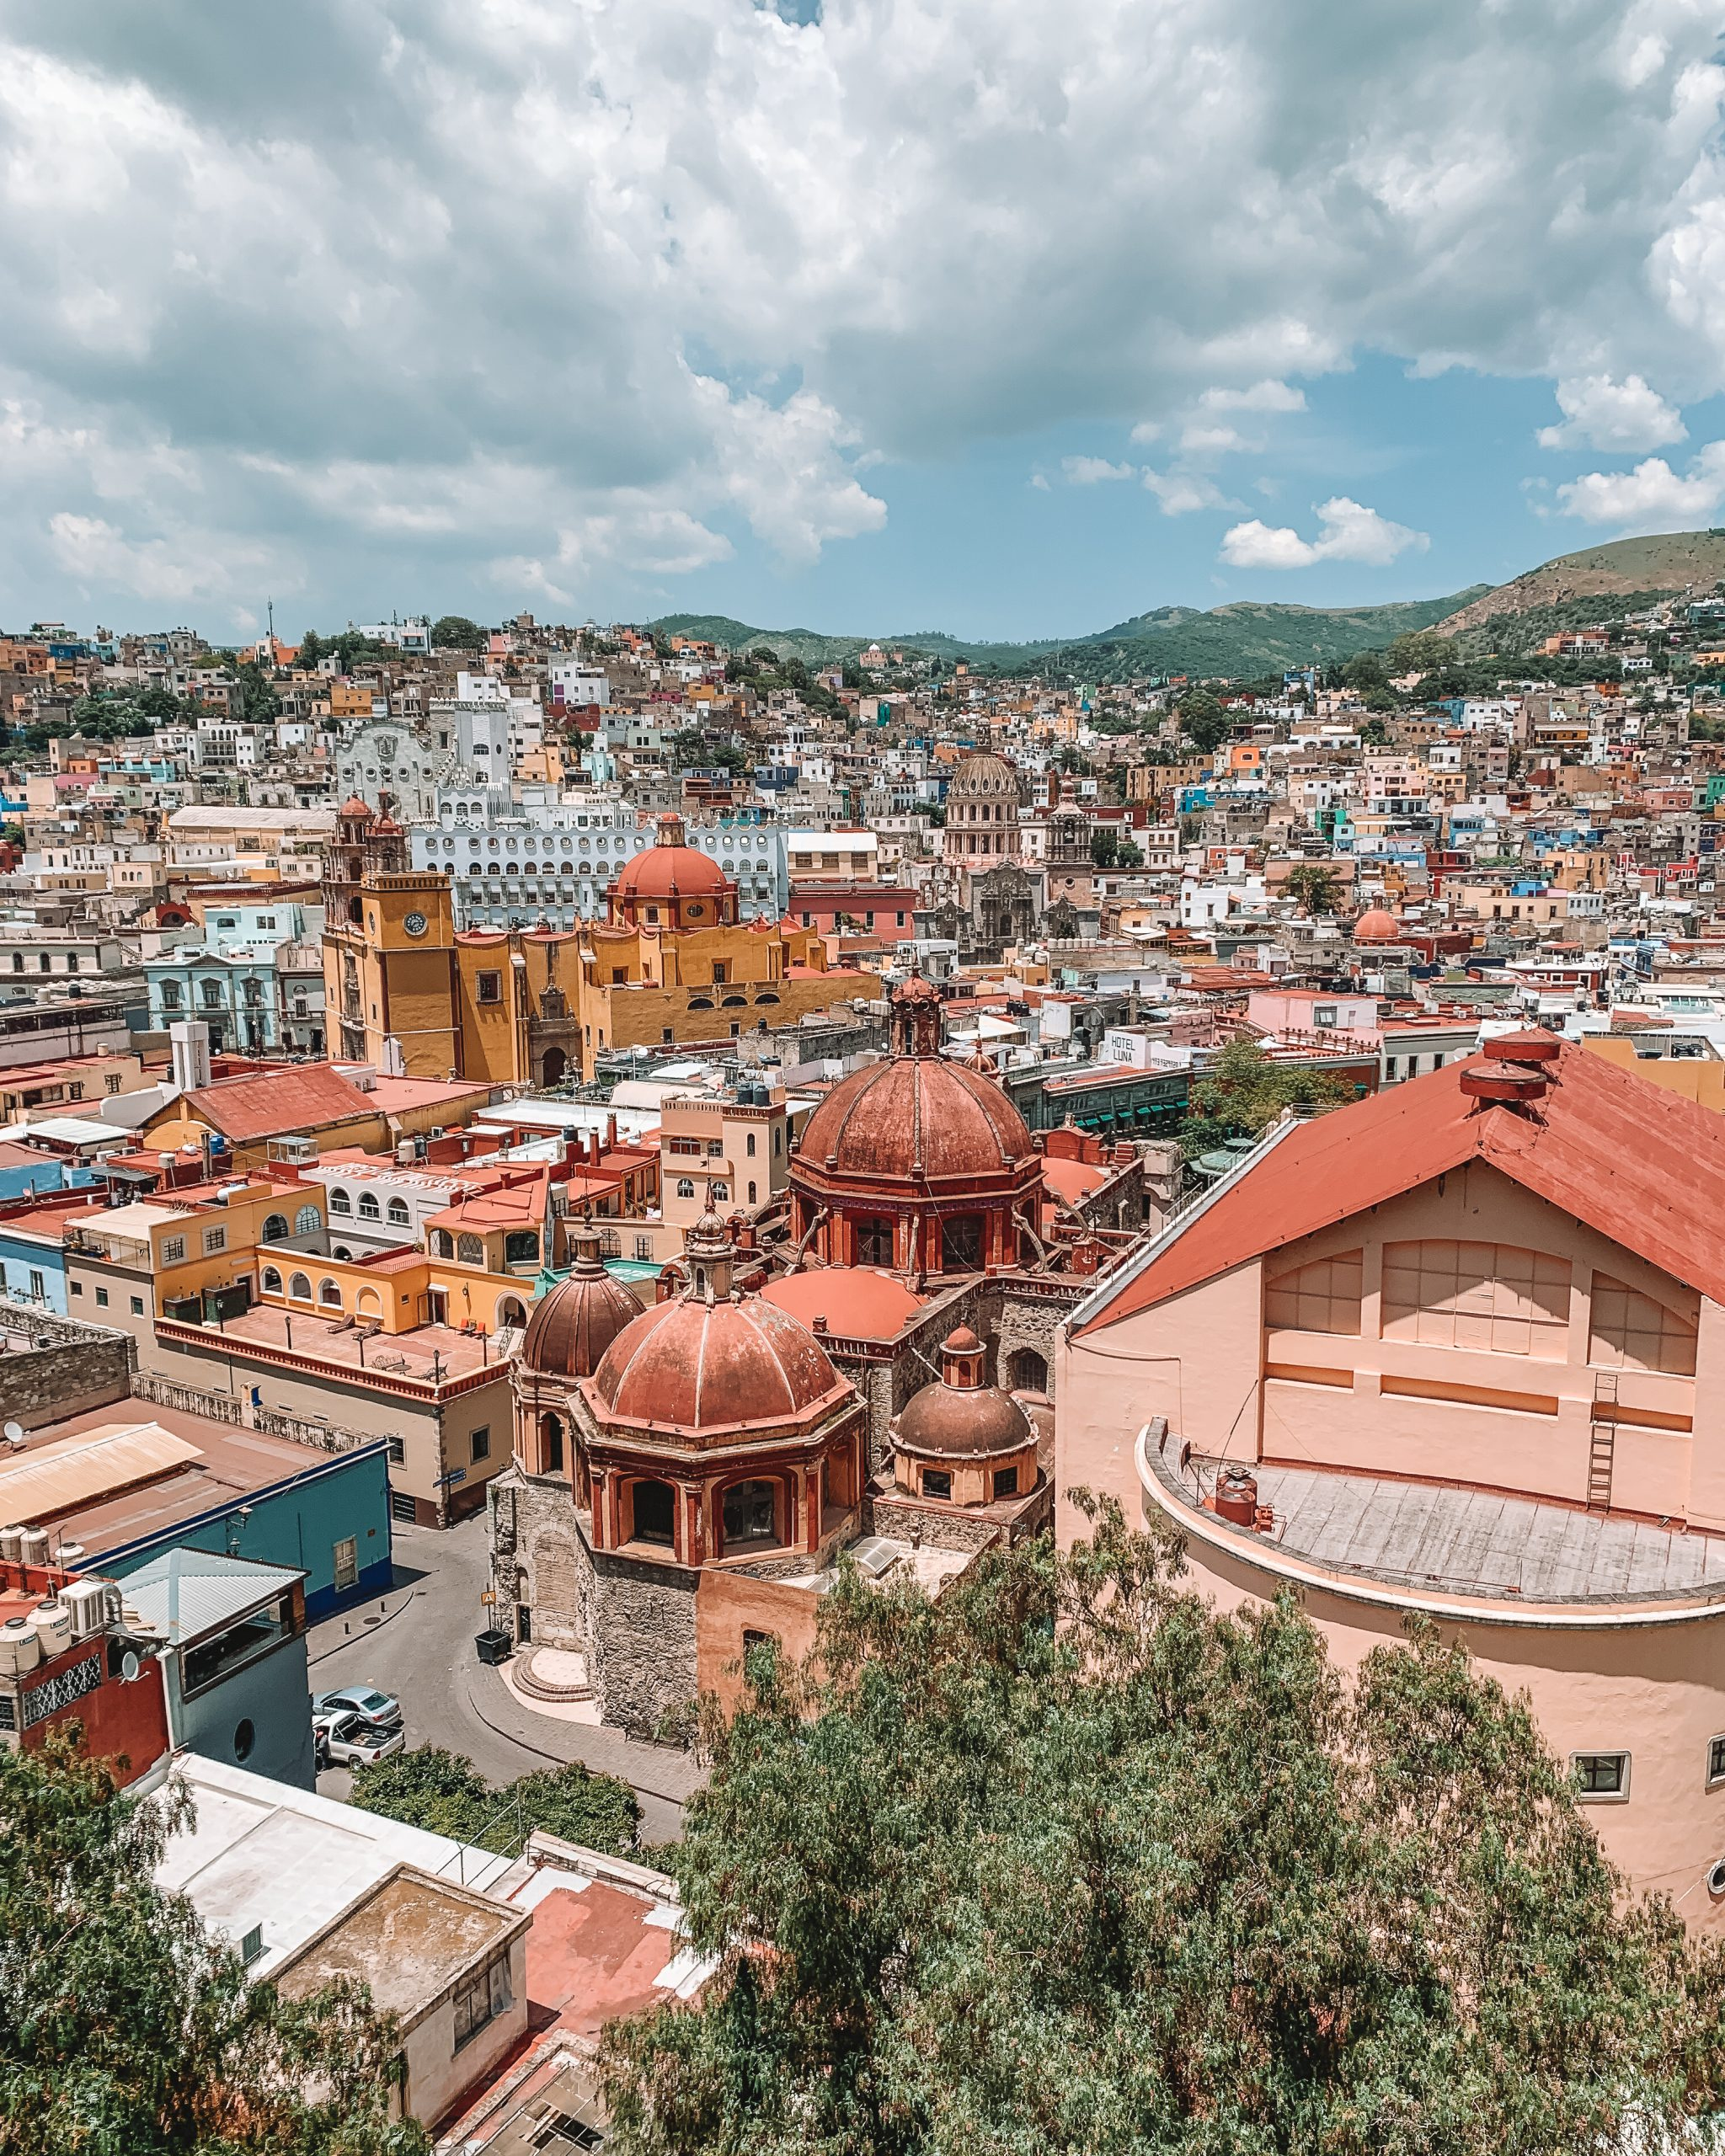 View from the funicular in Guanajuato